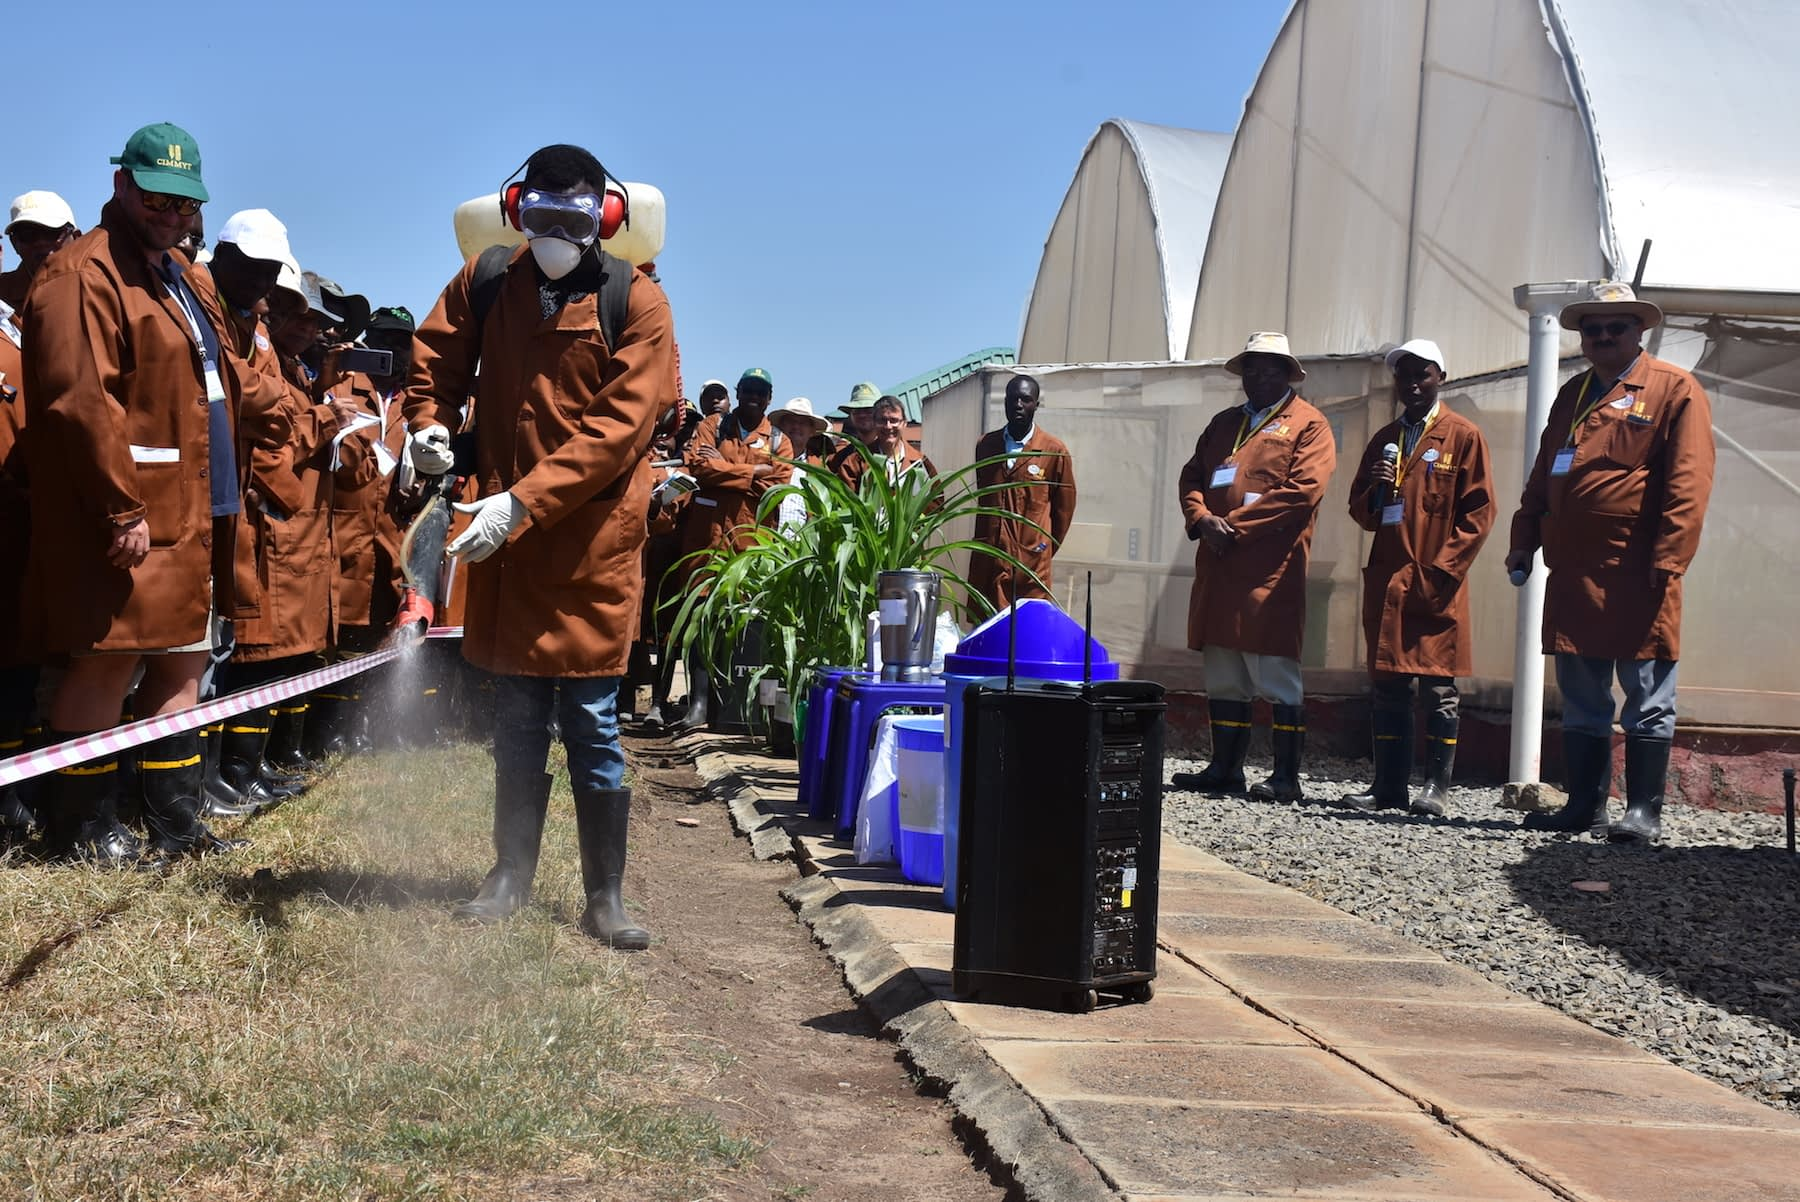 A worker at the Naivasha MLN research station conducts a mock inoculation (Photo: Joshua Masinde/CIMMYT)